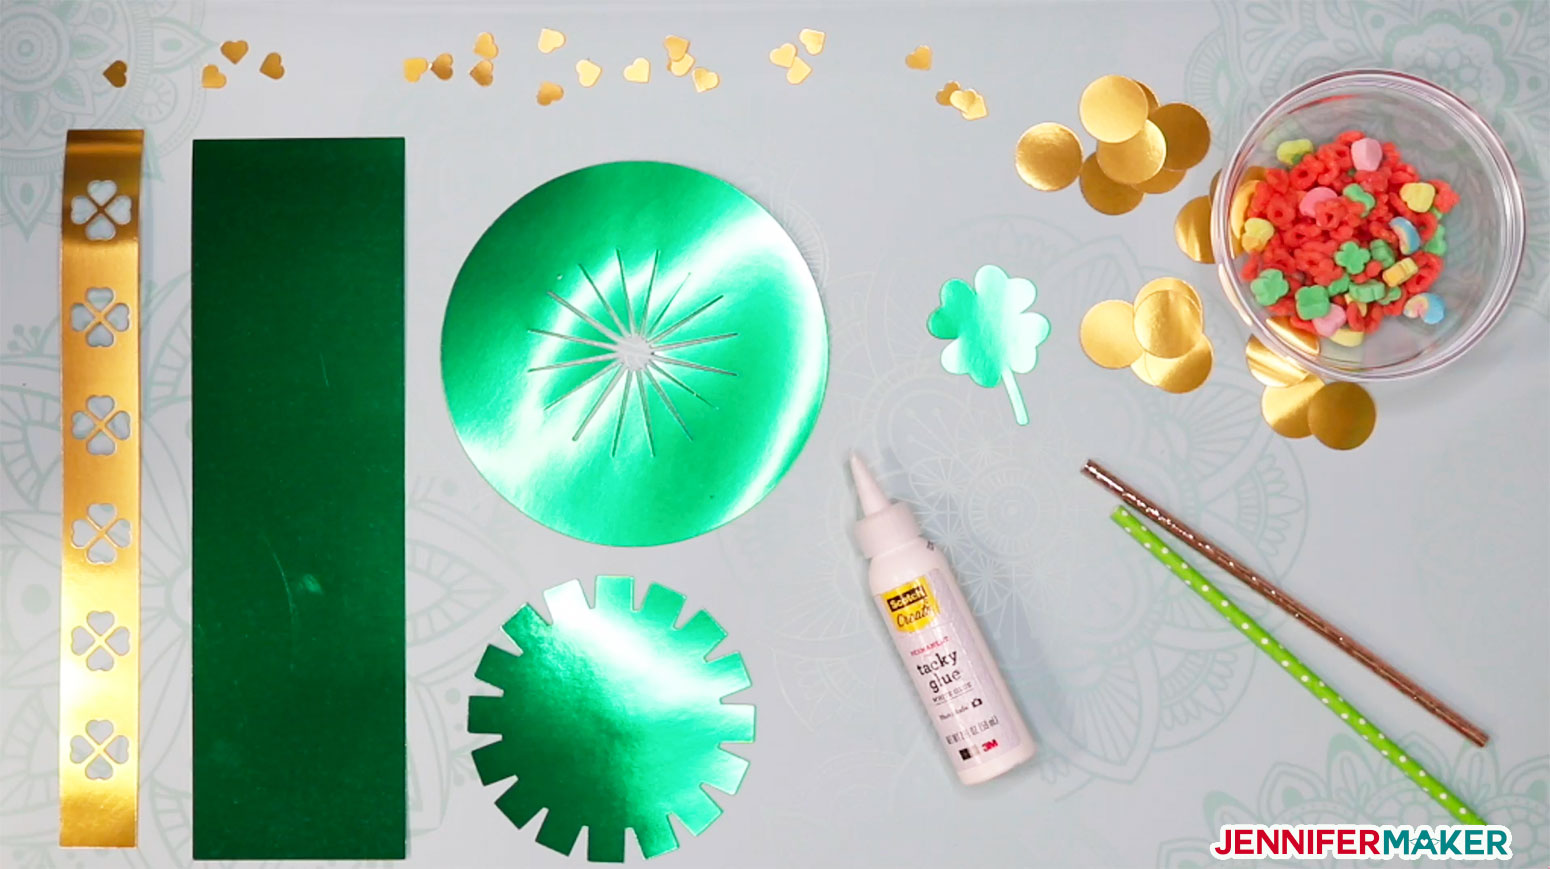 Materials to make a DIY Paper Hat and Leprechaun Trap